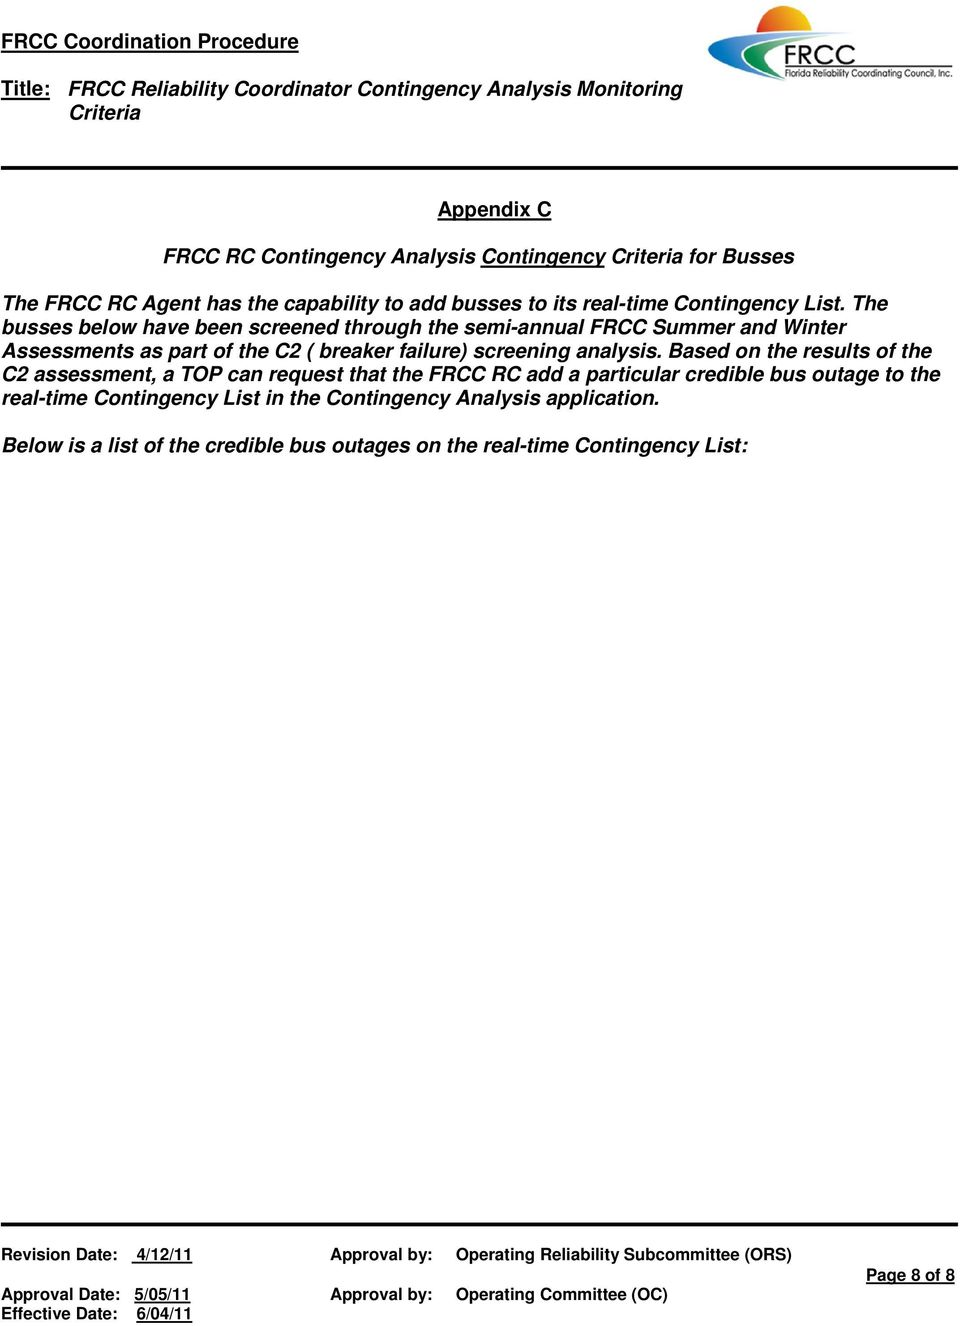 Based on the results of the C2 assessment, a TOP can request that the FRCC RC add a particular credible bus outage to the real-time Contingency List in the